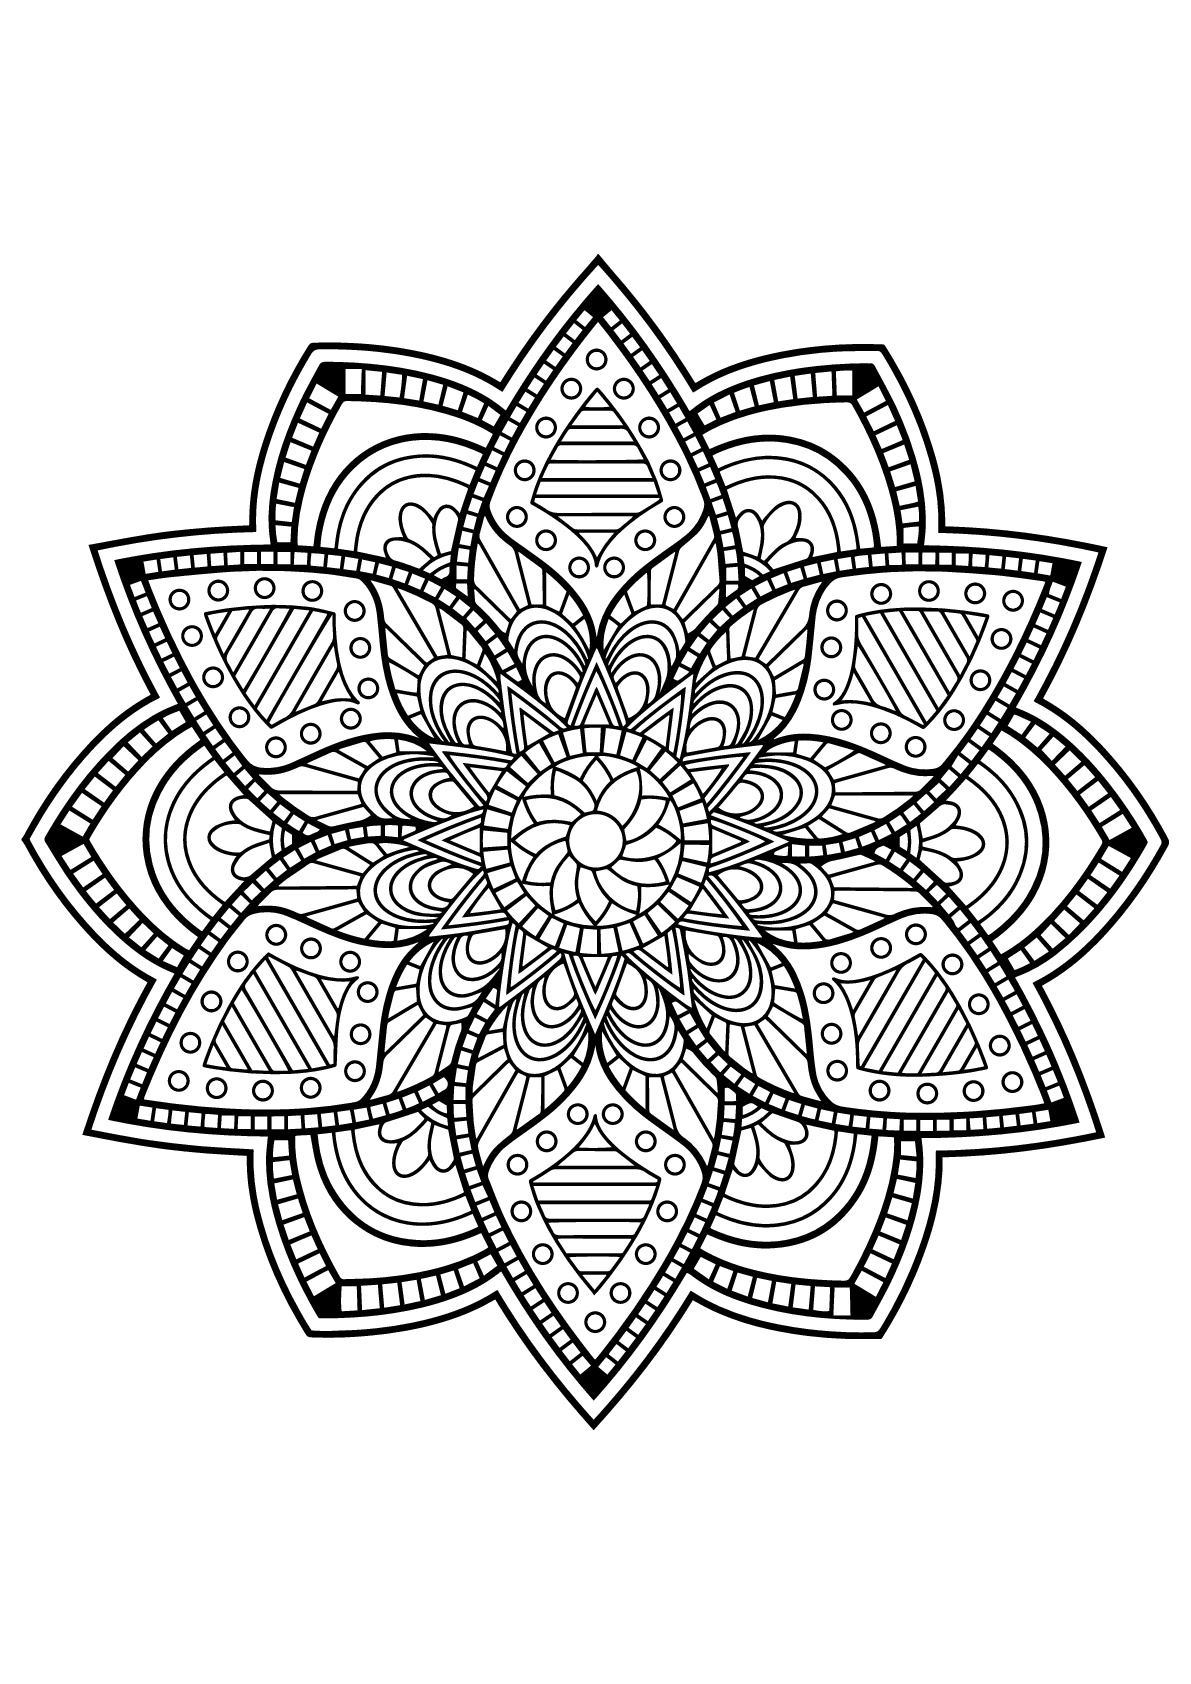 Mandala From Free Coloring Books For Adults 24 M Alas Adult